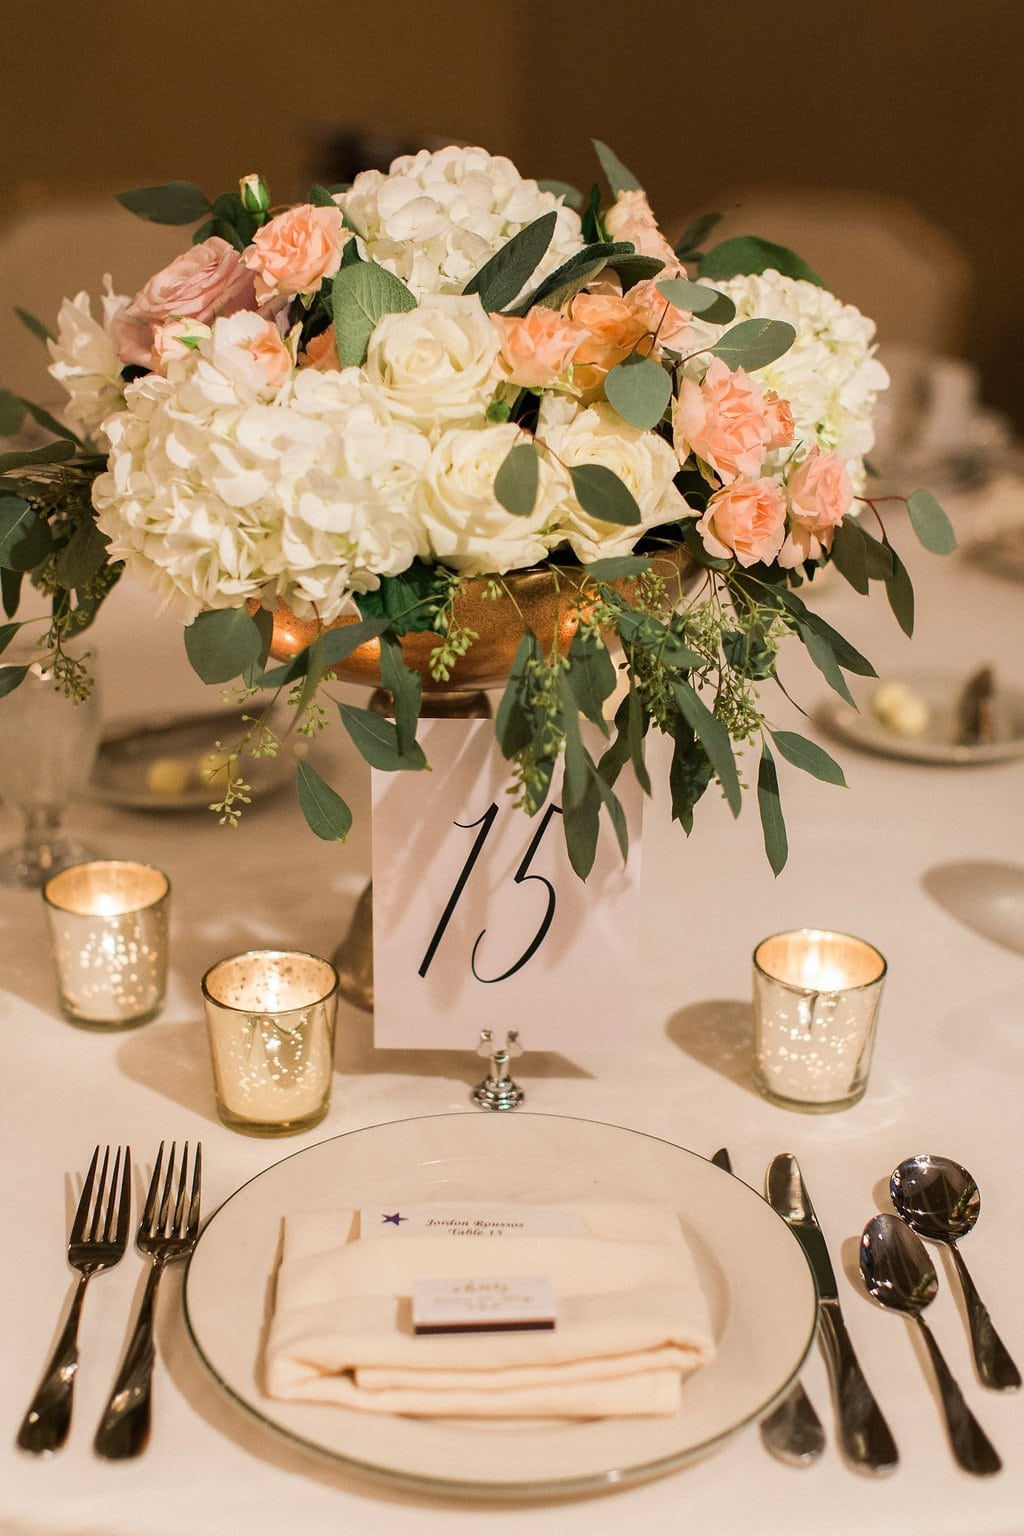 Table decorations and place setting details at the wedding reception with flowers candles and silverware